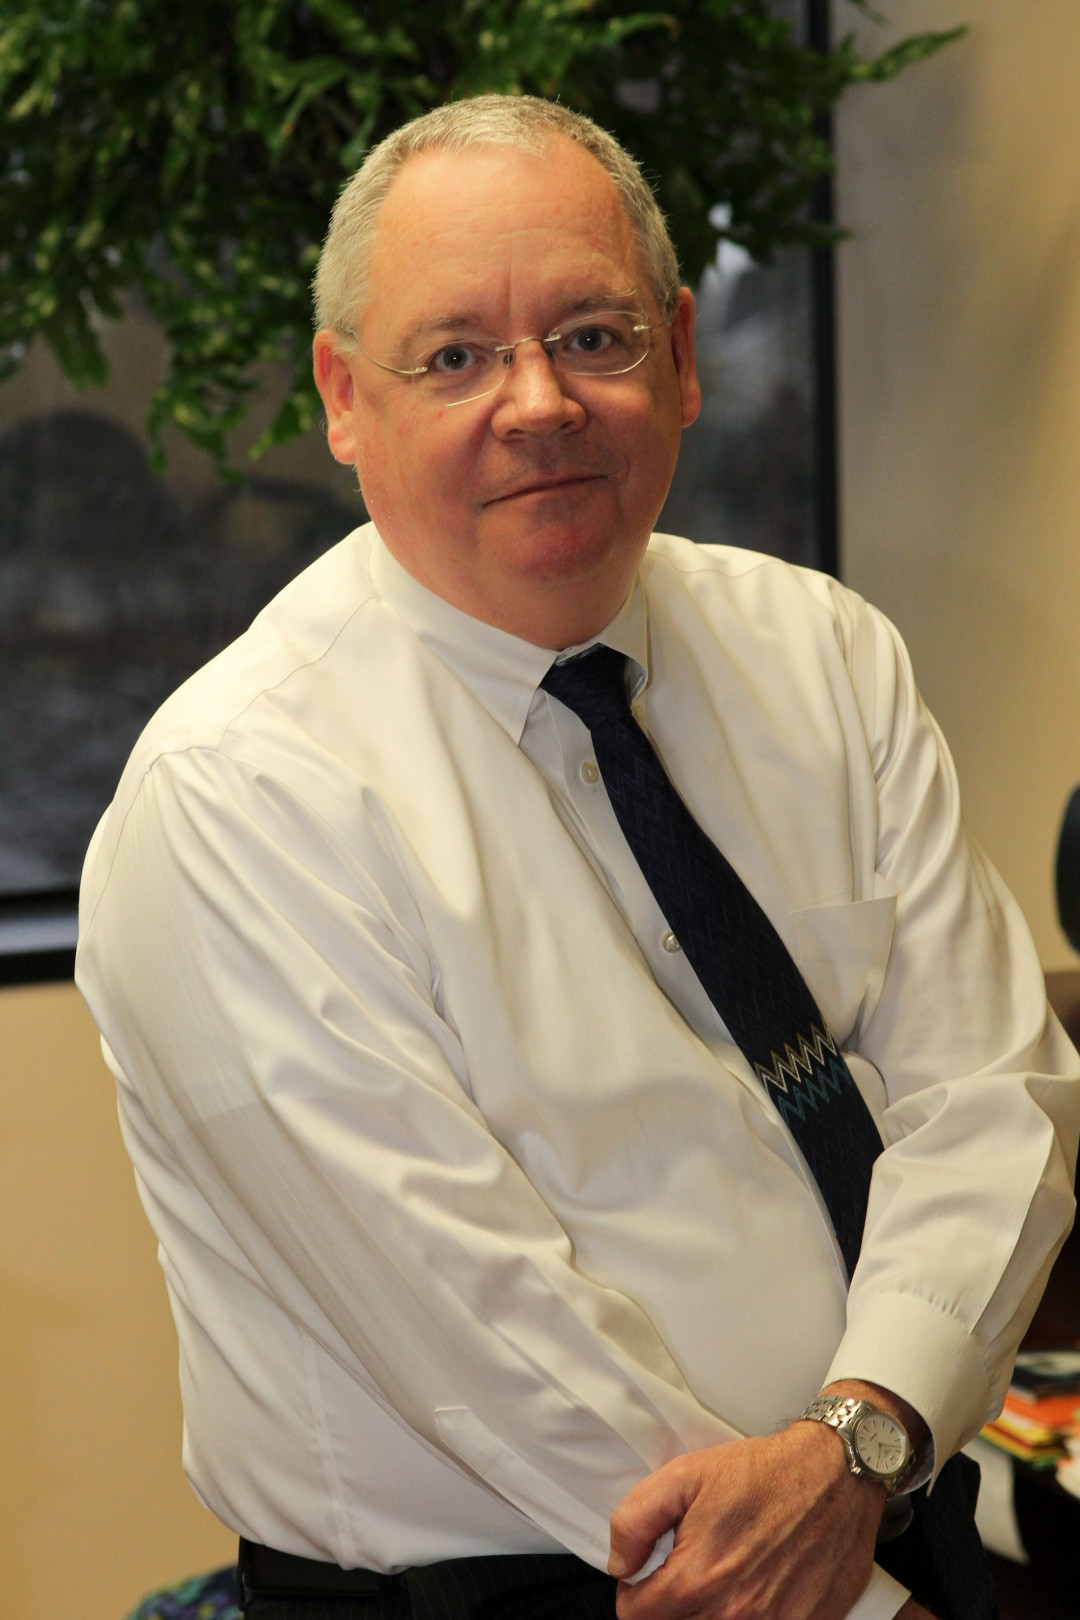 Robert C. Fouratt, CPA